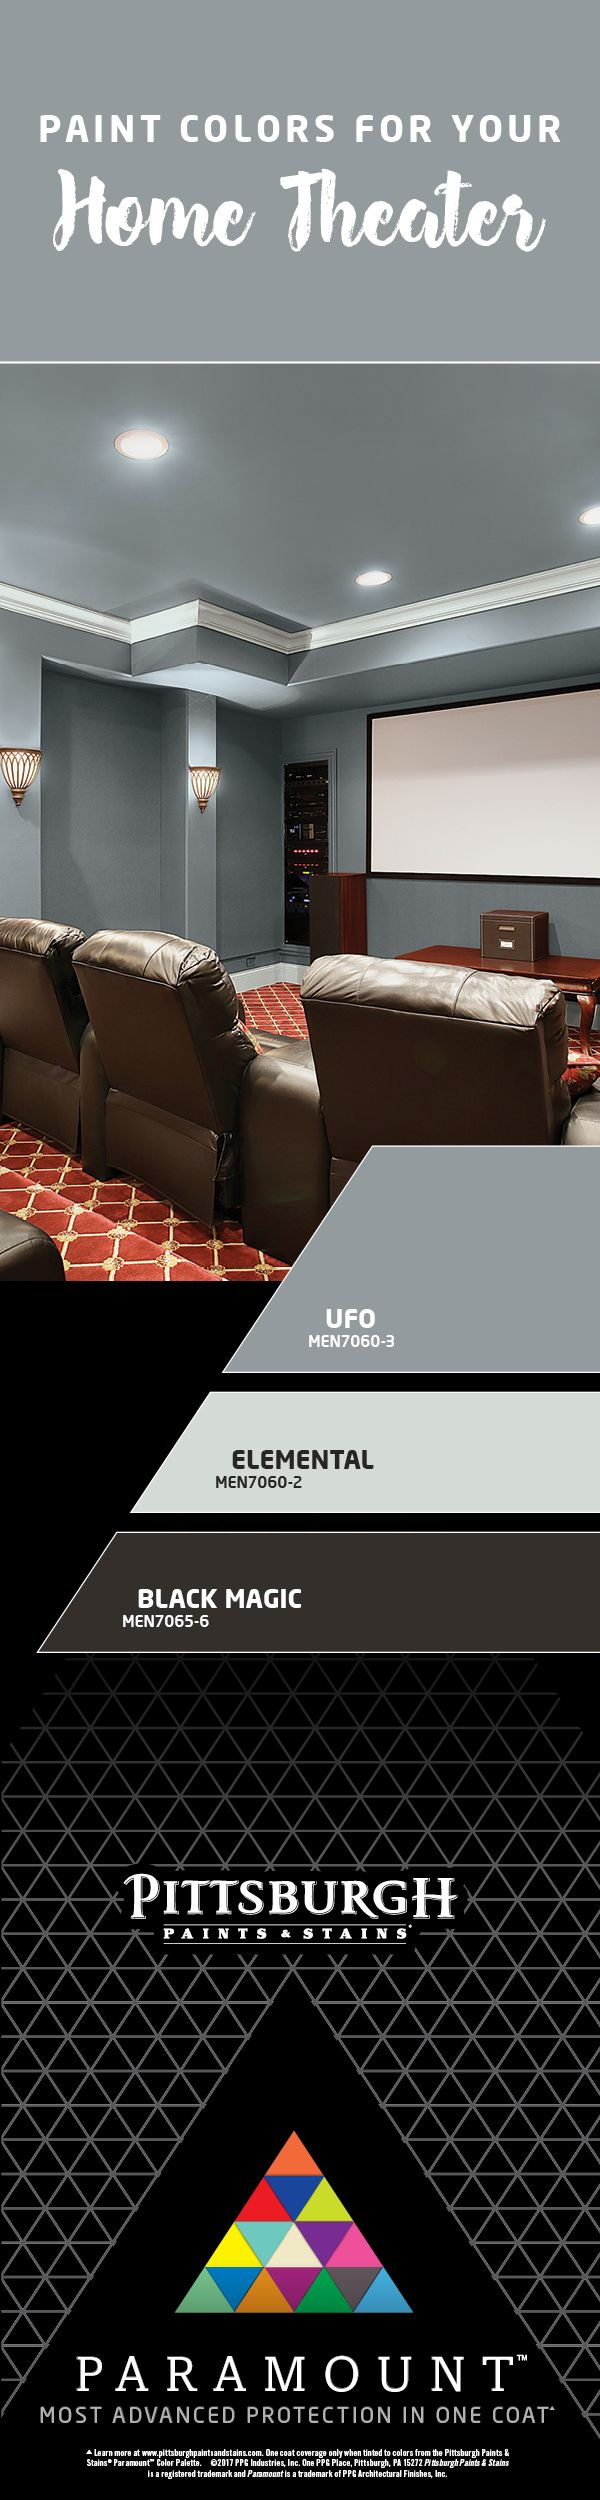 Ultimate Home Theater | Layer dark wall colors to create the optimal space for watching movies, TV or the big game.  We've expertly selected colors that set the mood for, and provide the perfect surrounding for showtime.  Bring this look to life in your home with Pittsburgh Paints & Stains Paramount™ Paint.